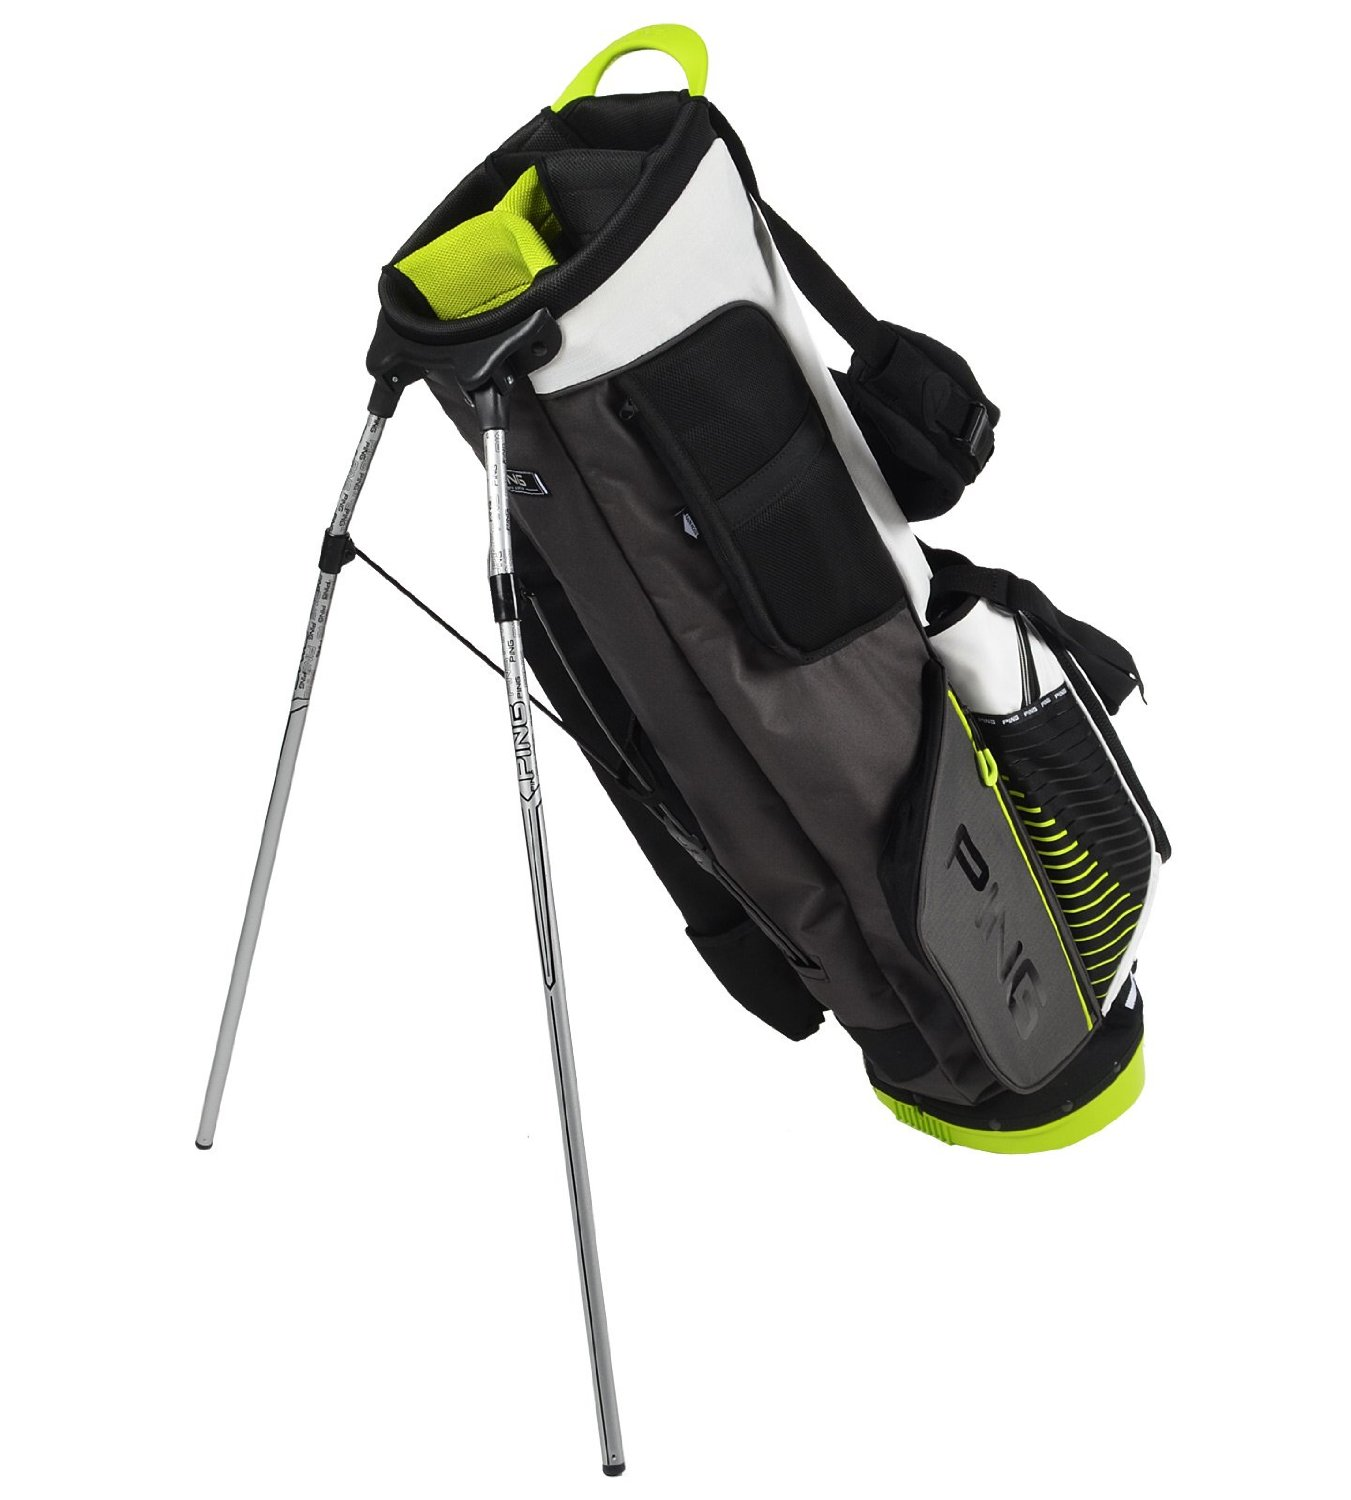 dd7d370205 Ping Mens 4 Series II Golf Stand Bags